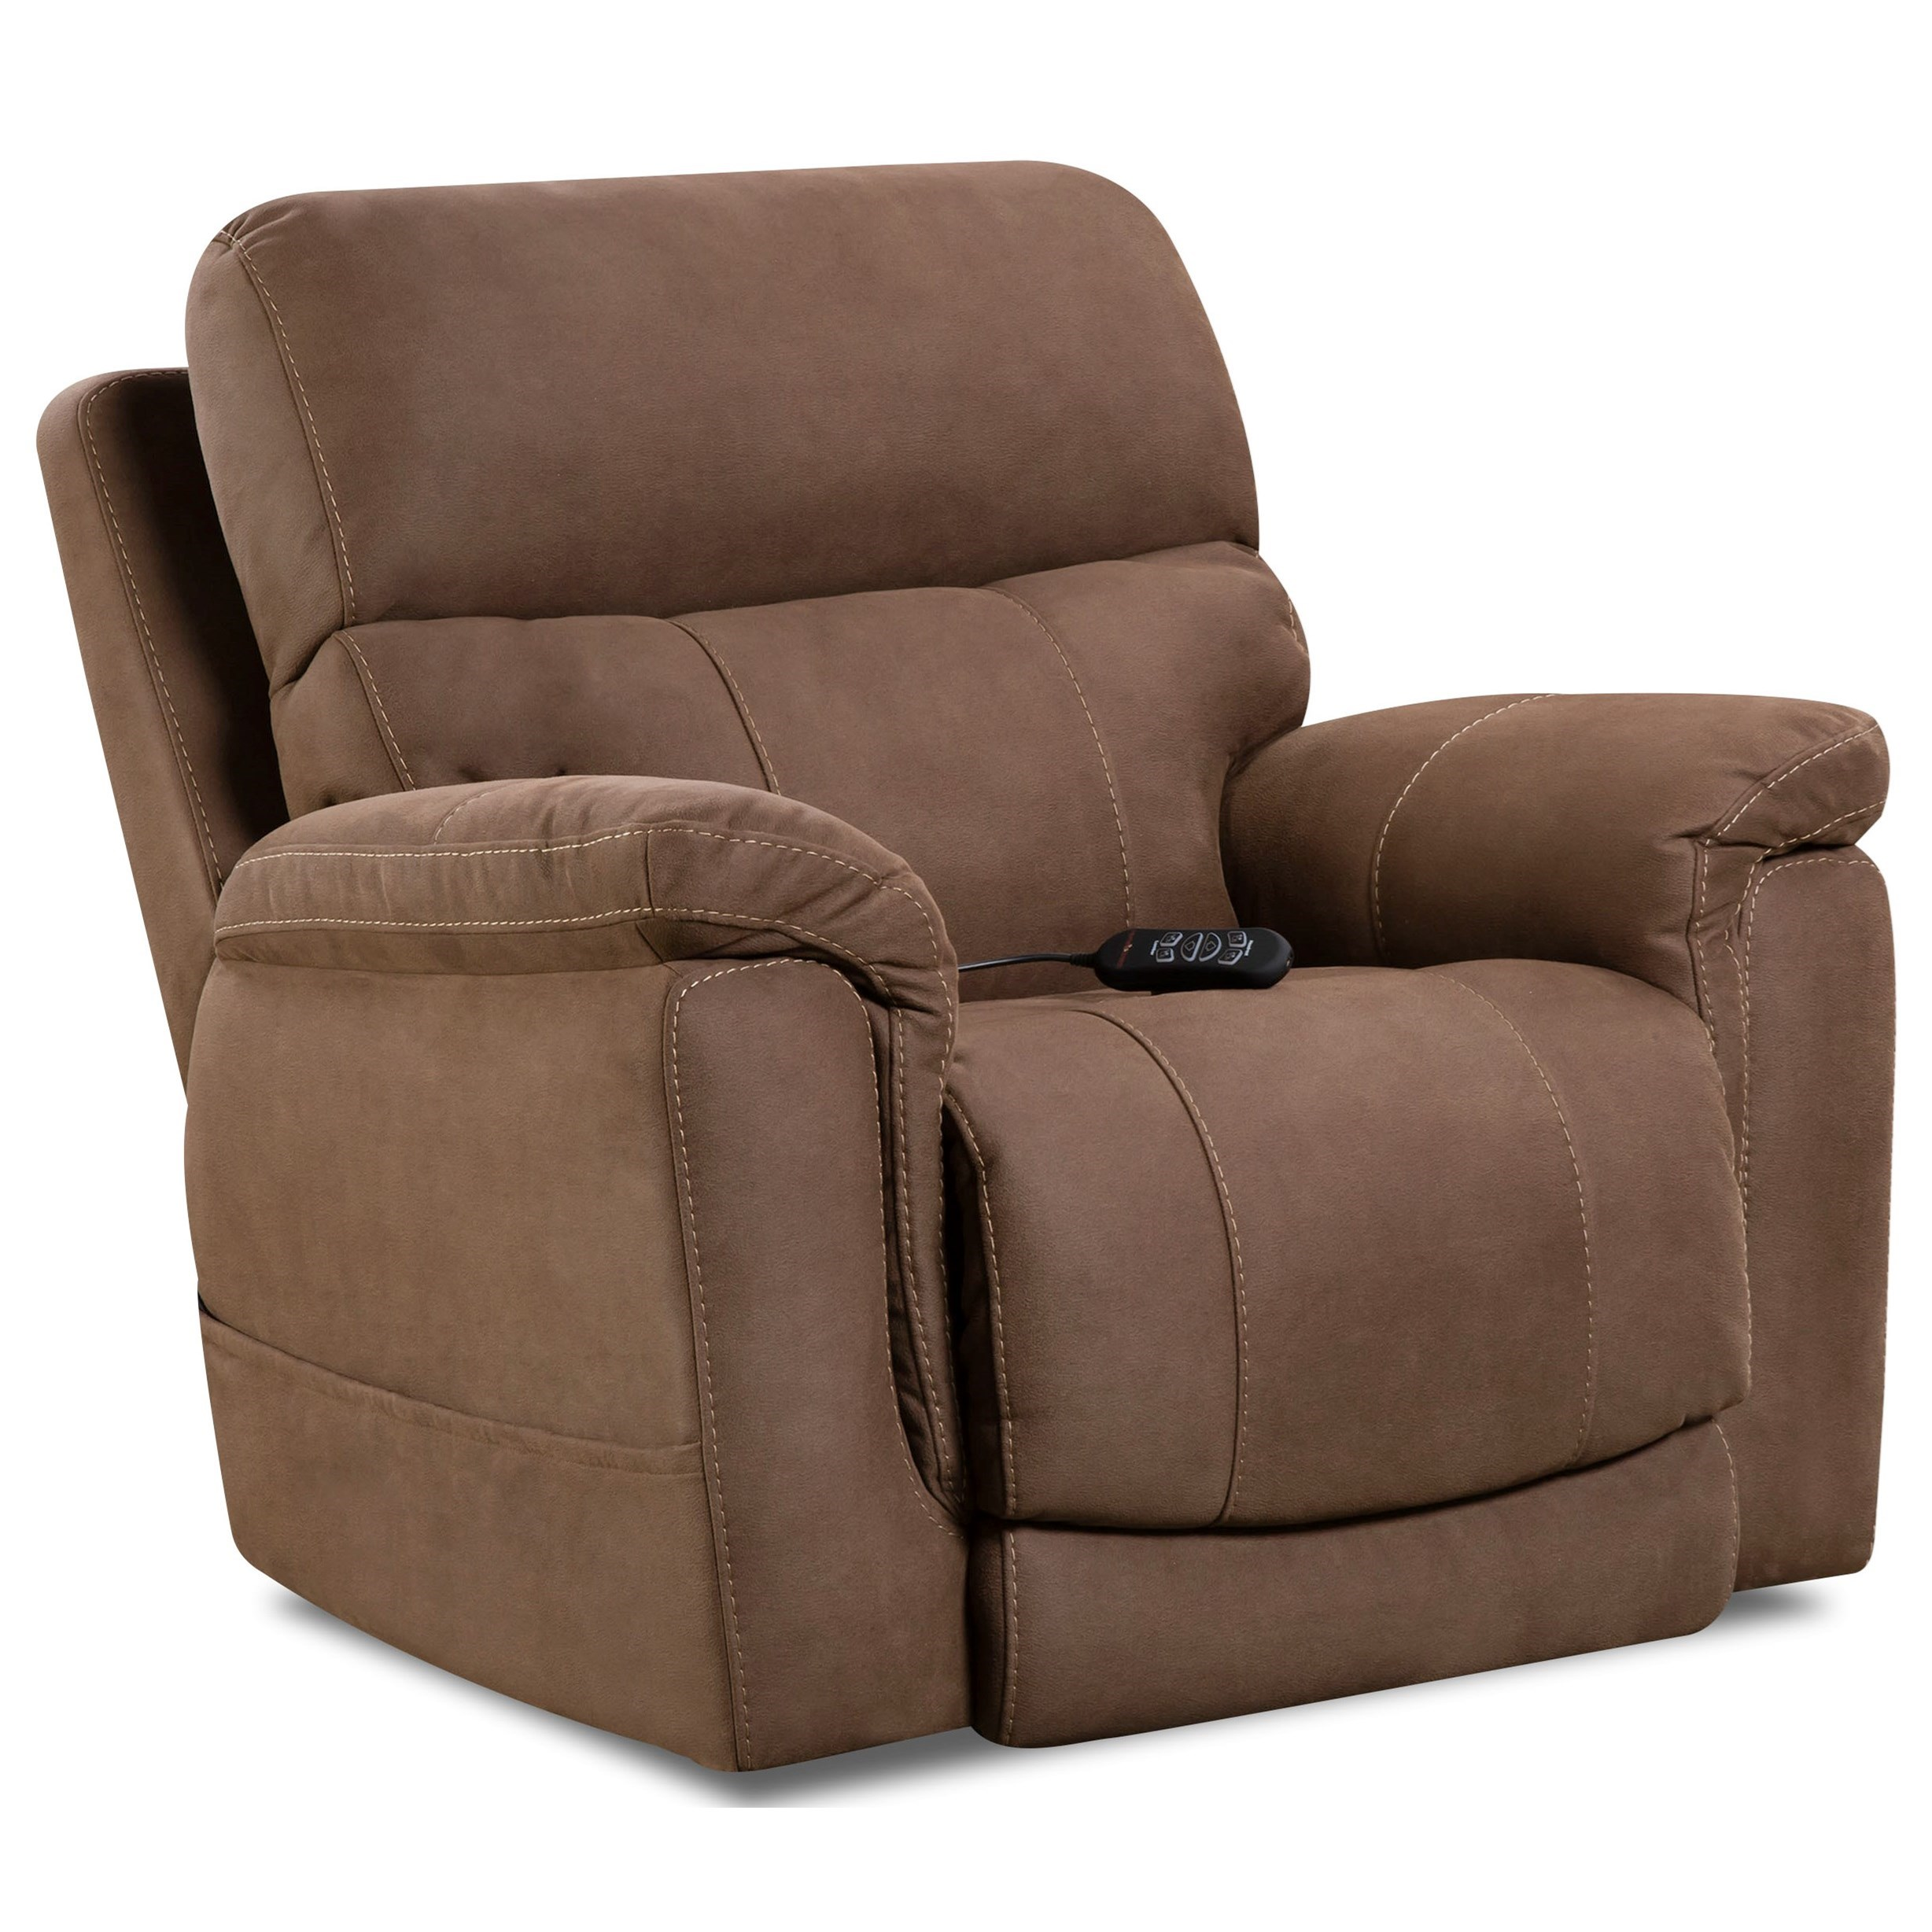 Comfort Living 175 Collection Power Wall-Saver Recliner - Item Number: 175-97-21